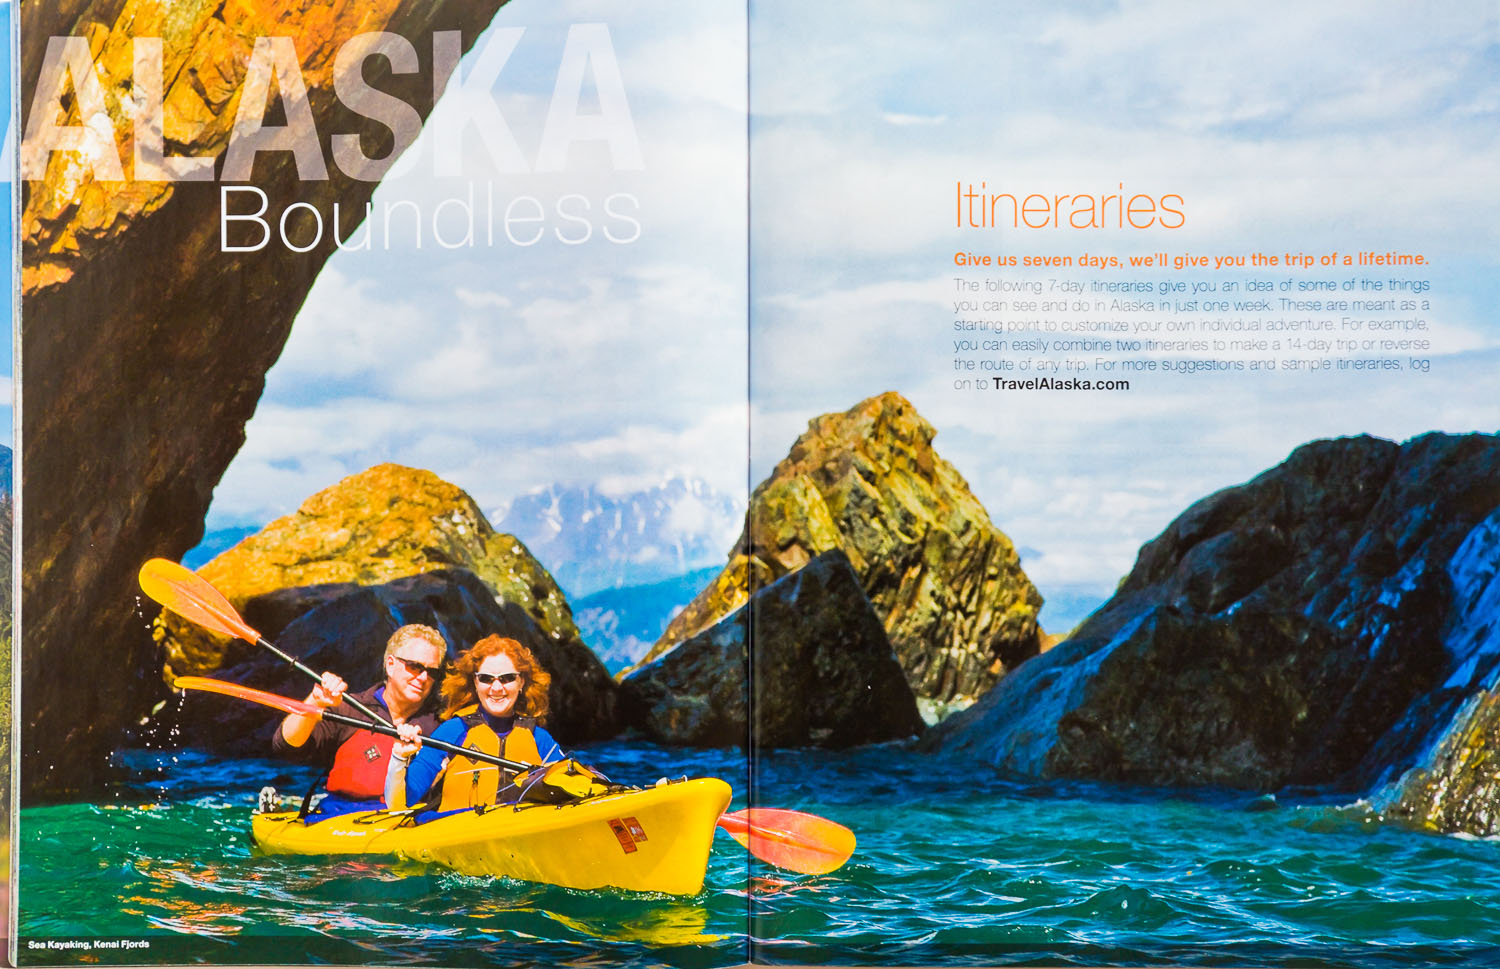 Travel_Alaska_Vacation_Guide_Kayaking_double_page_DeYoung